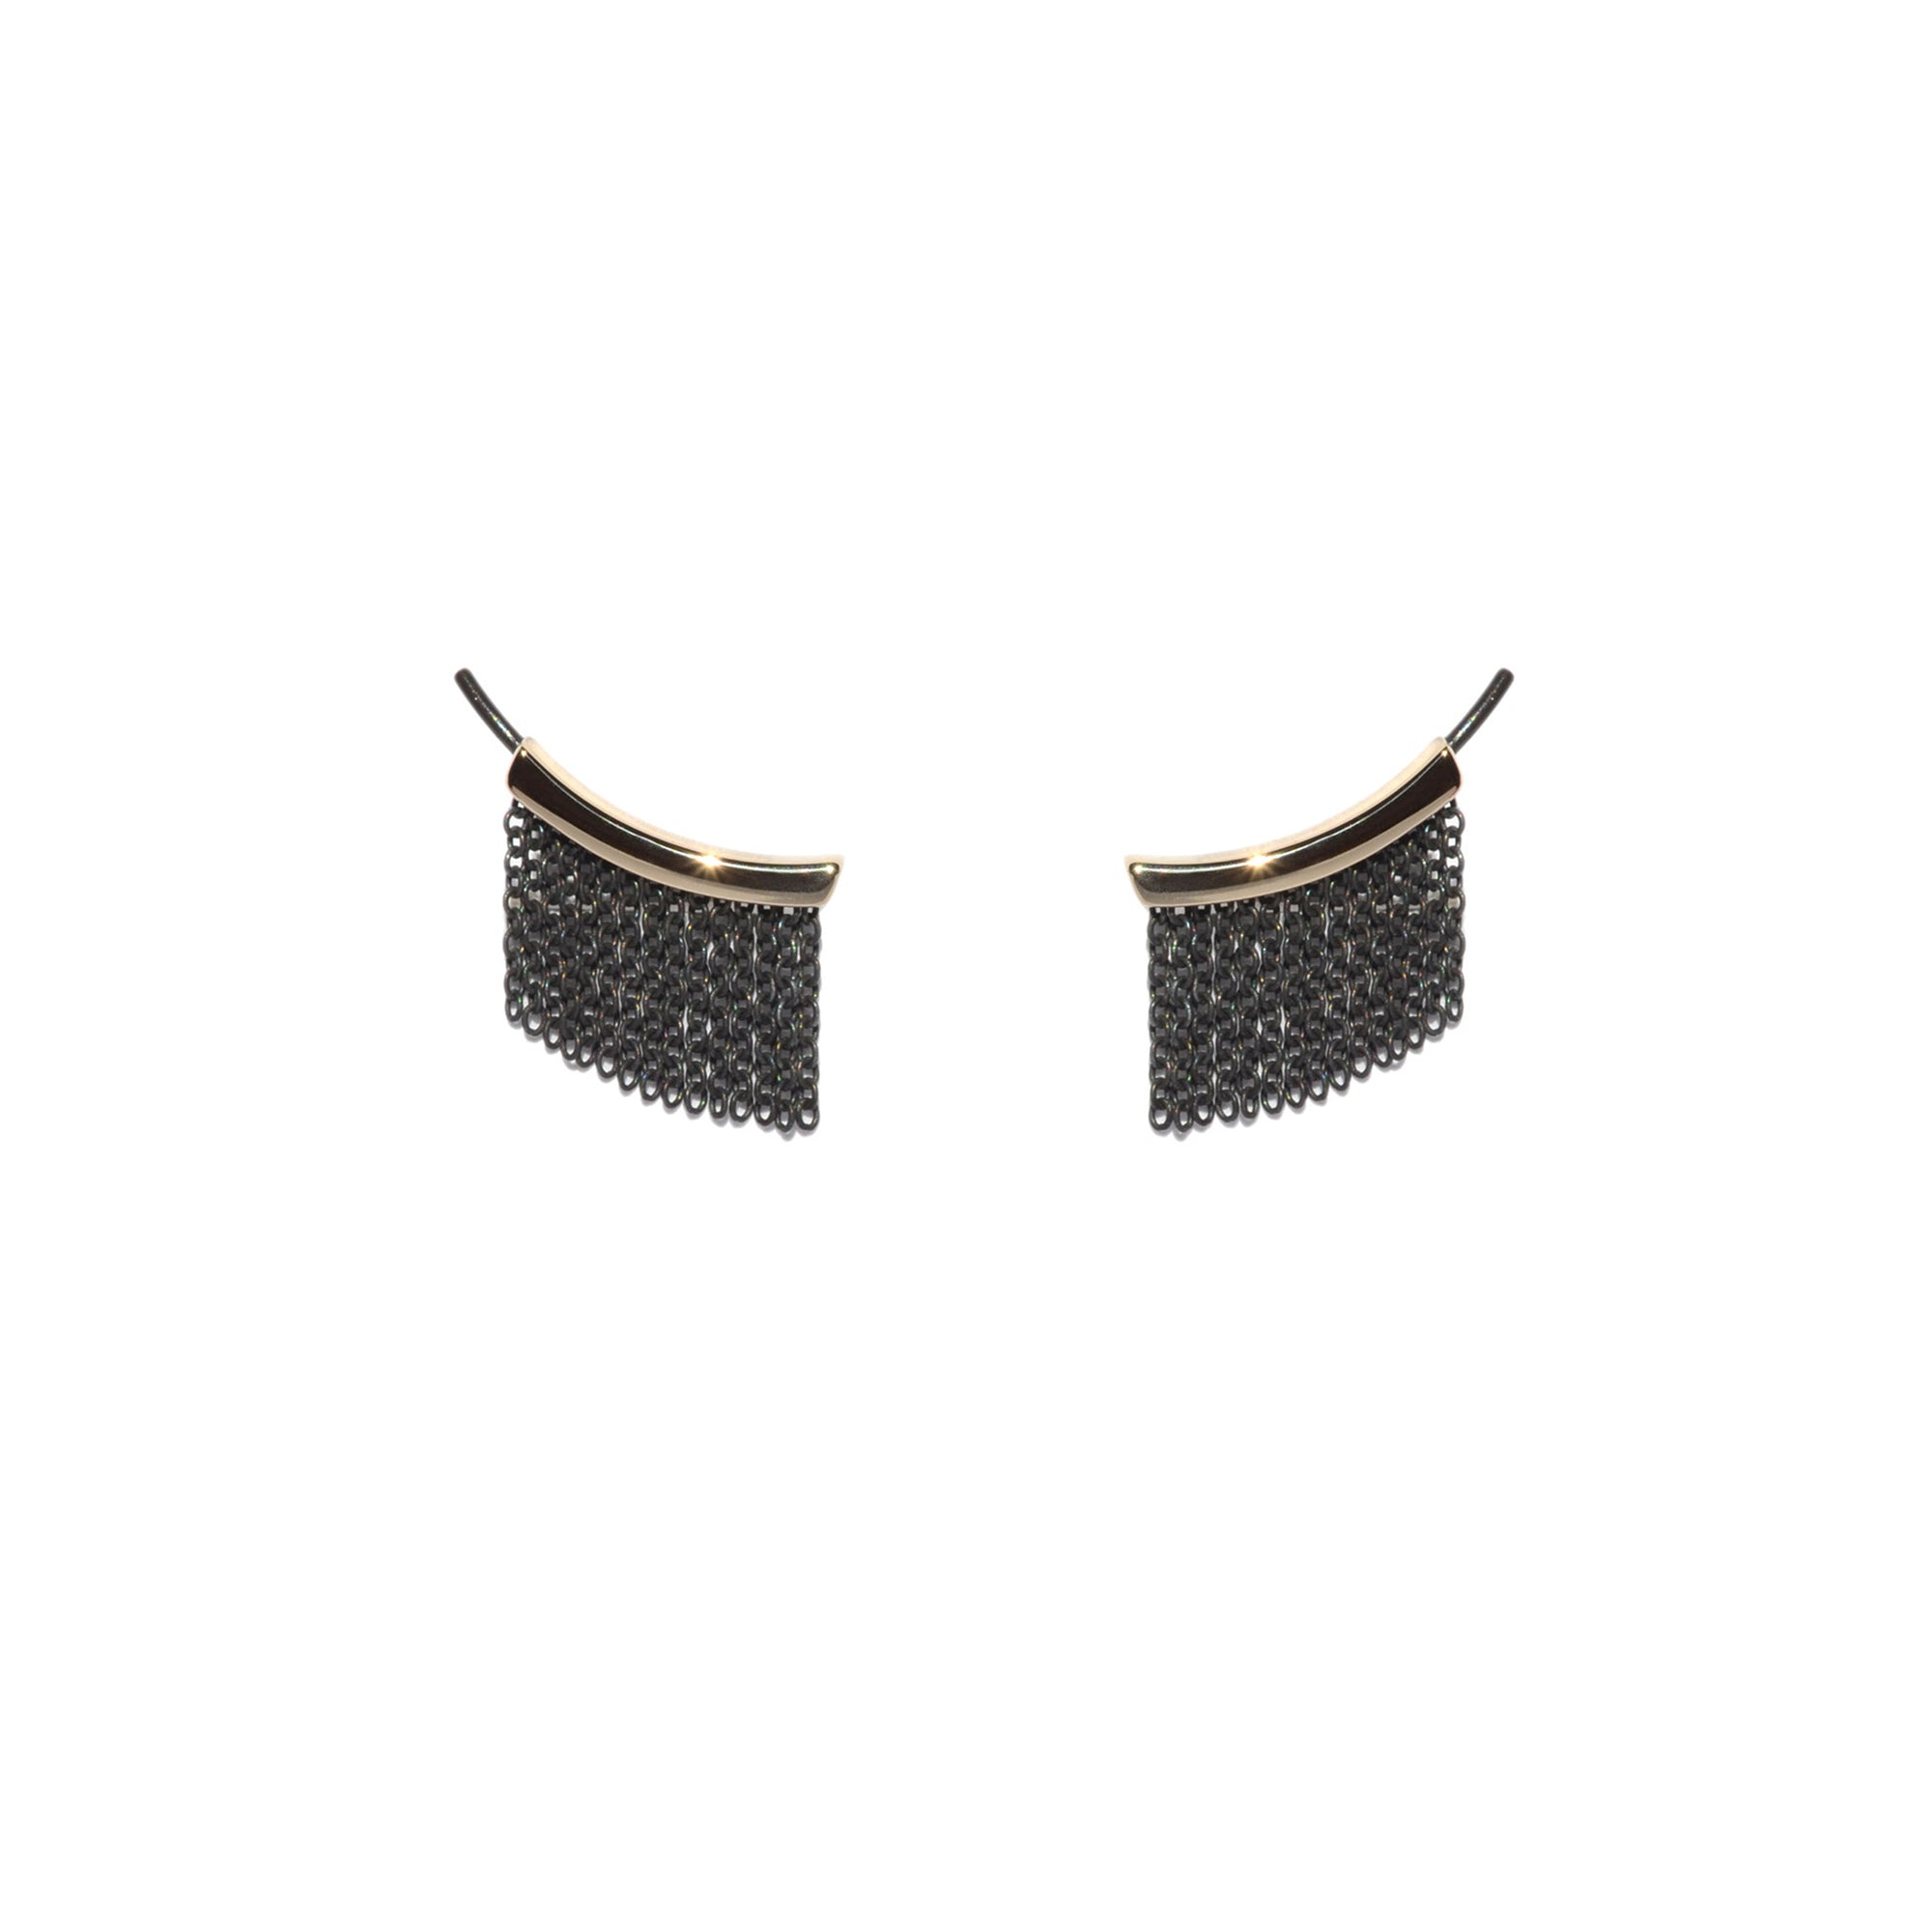 Small Fringe Ear Climbers - 14k Yellow Gold & Oxidized Silver - Talisman Collection Fine Jewelers